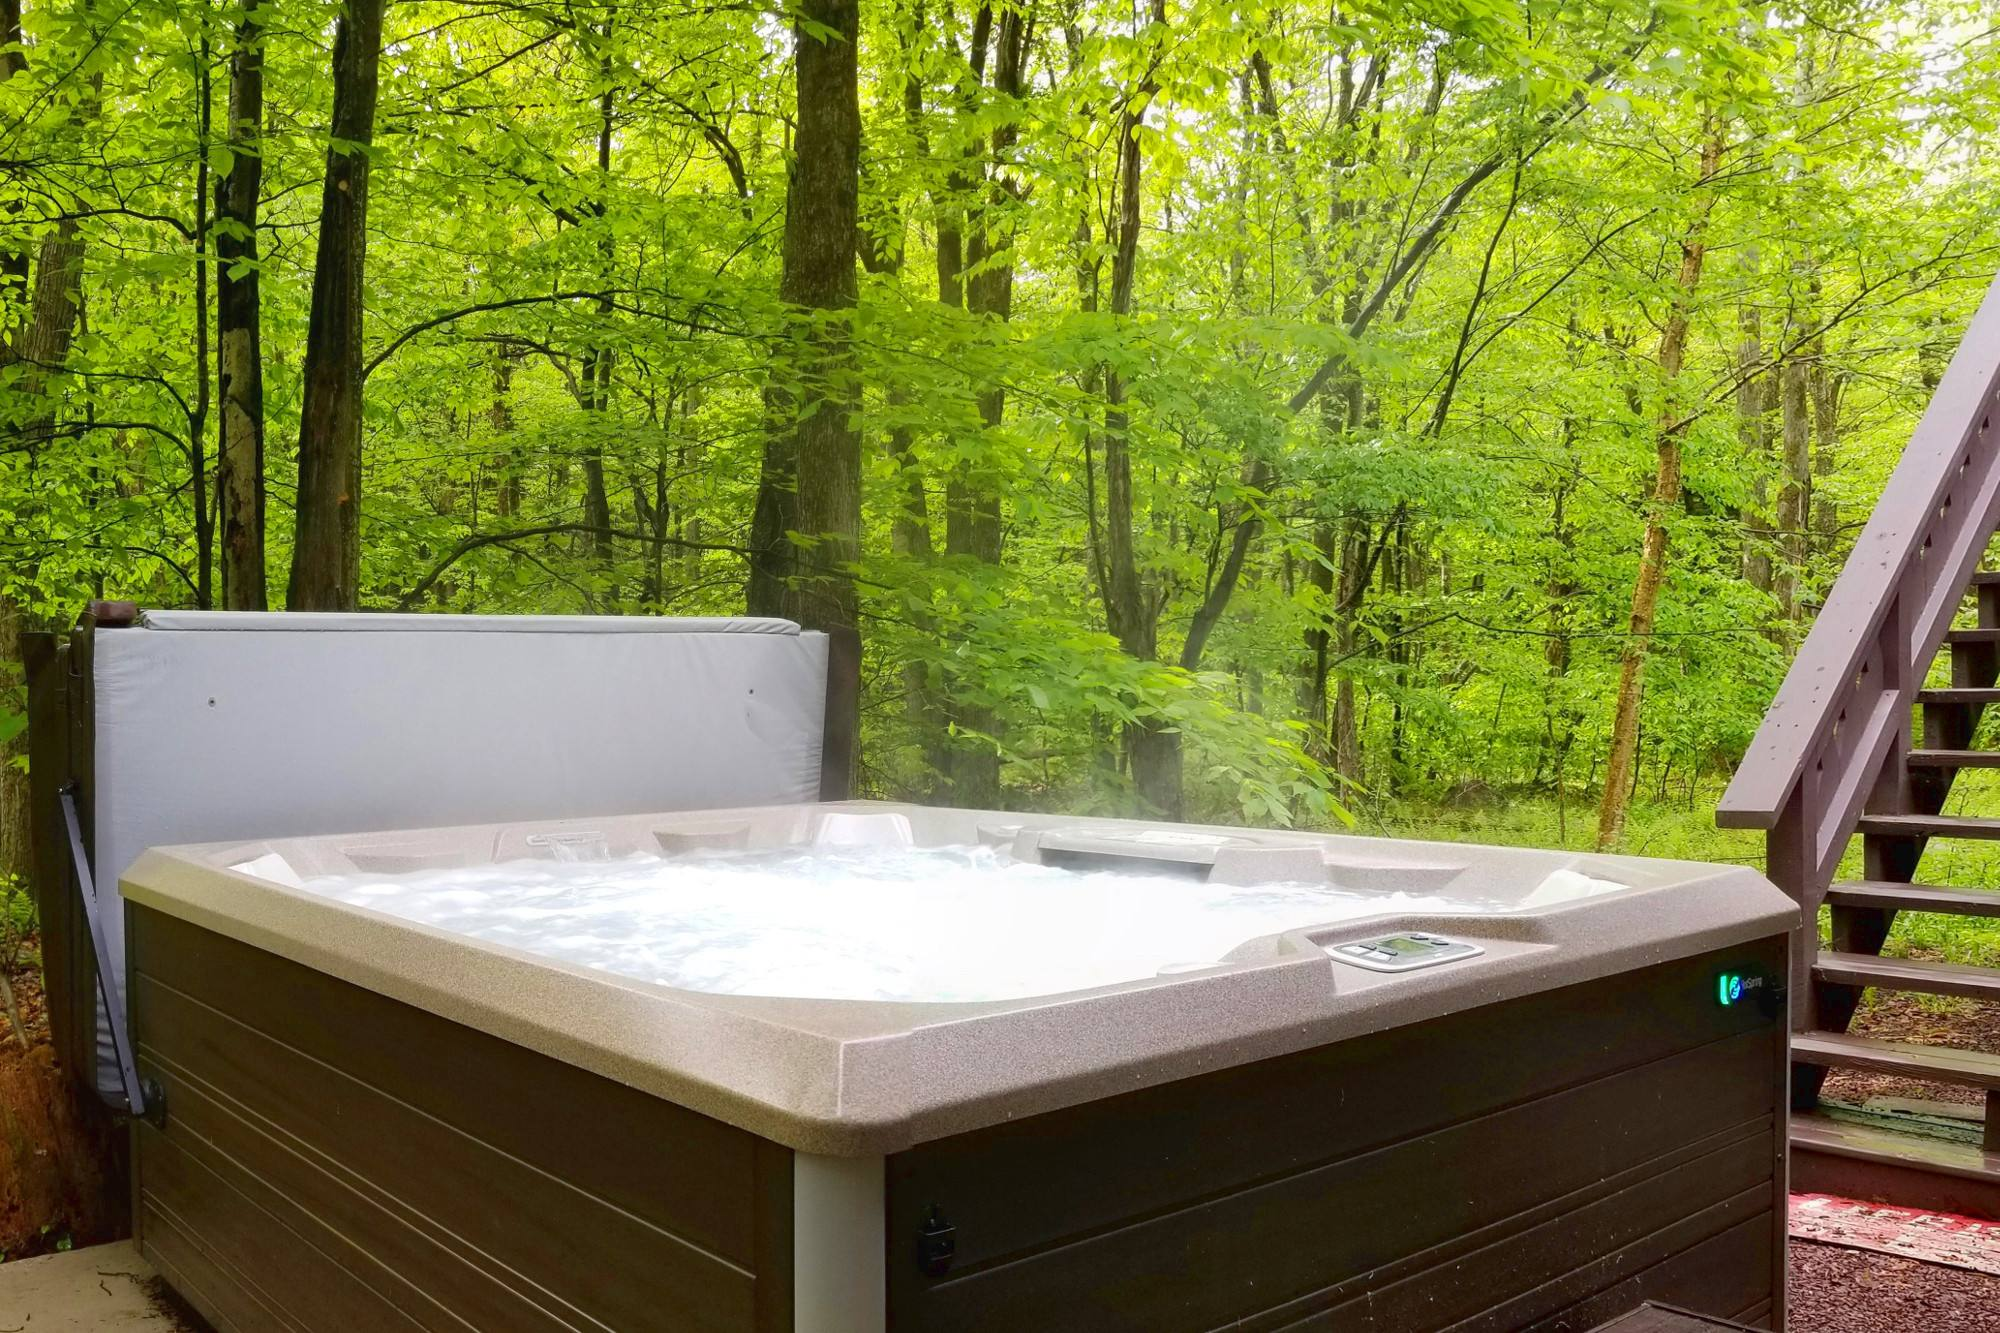 Feels Like Heaven - 5 Bedroom Poconos Vacation Rental - Hot Spring 7 Person Outdoor Hot Tub